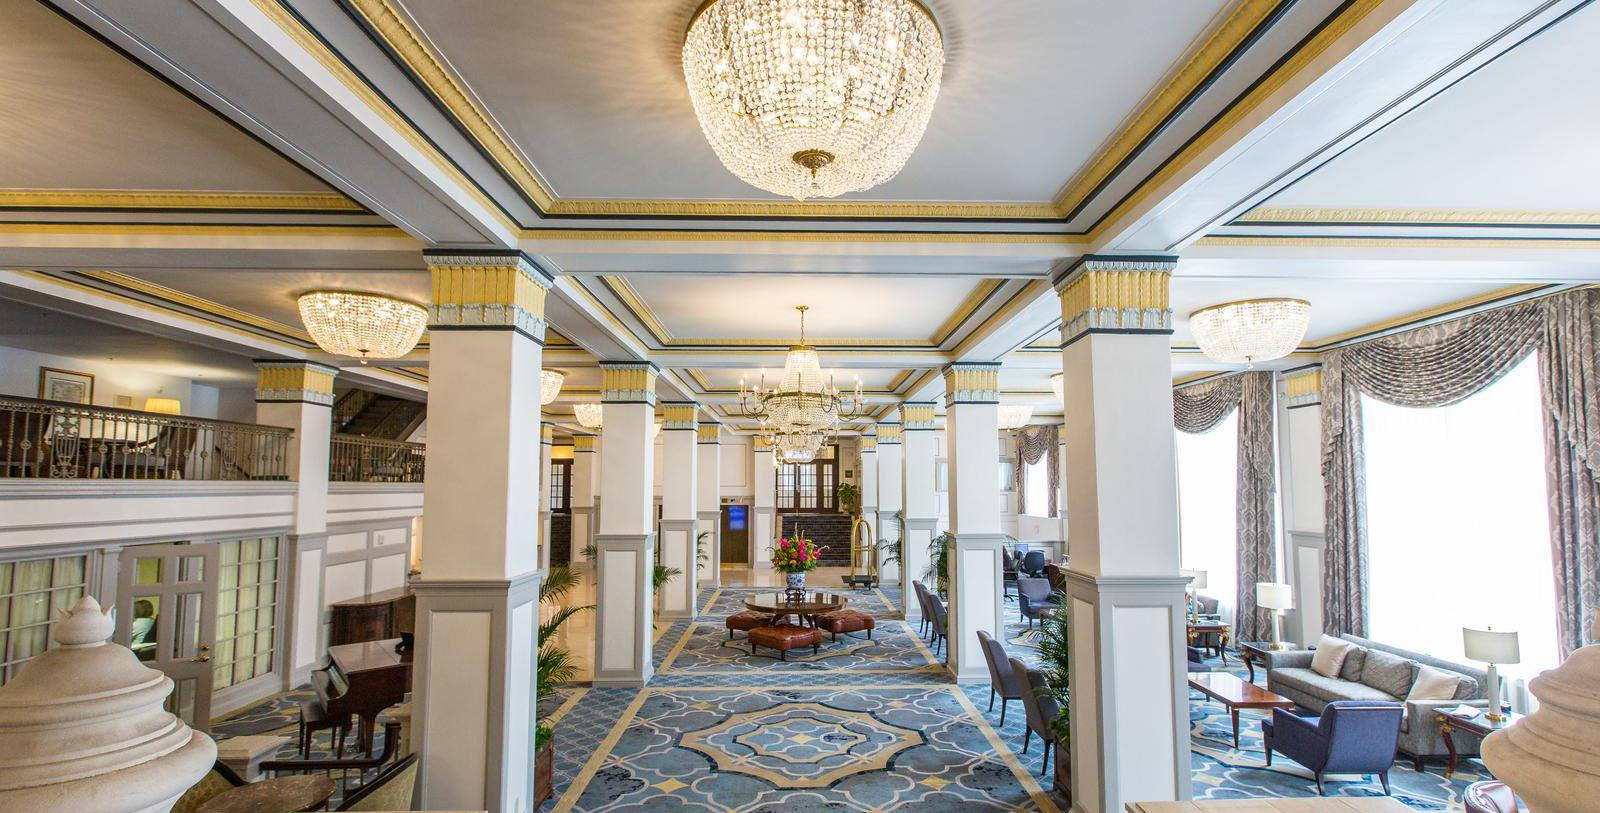 Image of hotel lobby at Francis Marion Hotel, 1924, Member of Historic Hotels of America, in Charleston, South Carolina, Special Offers, Discounted Rates, Families, Romantic Escape, Honeymoons, Anniversaries, Reunions